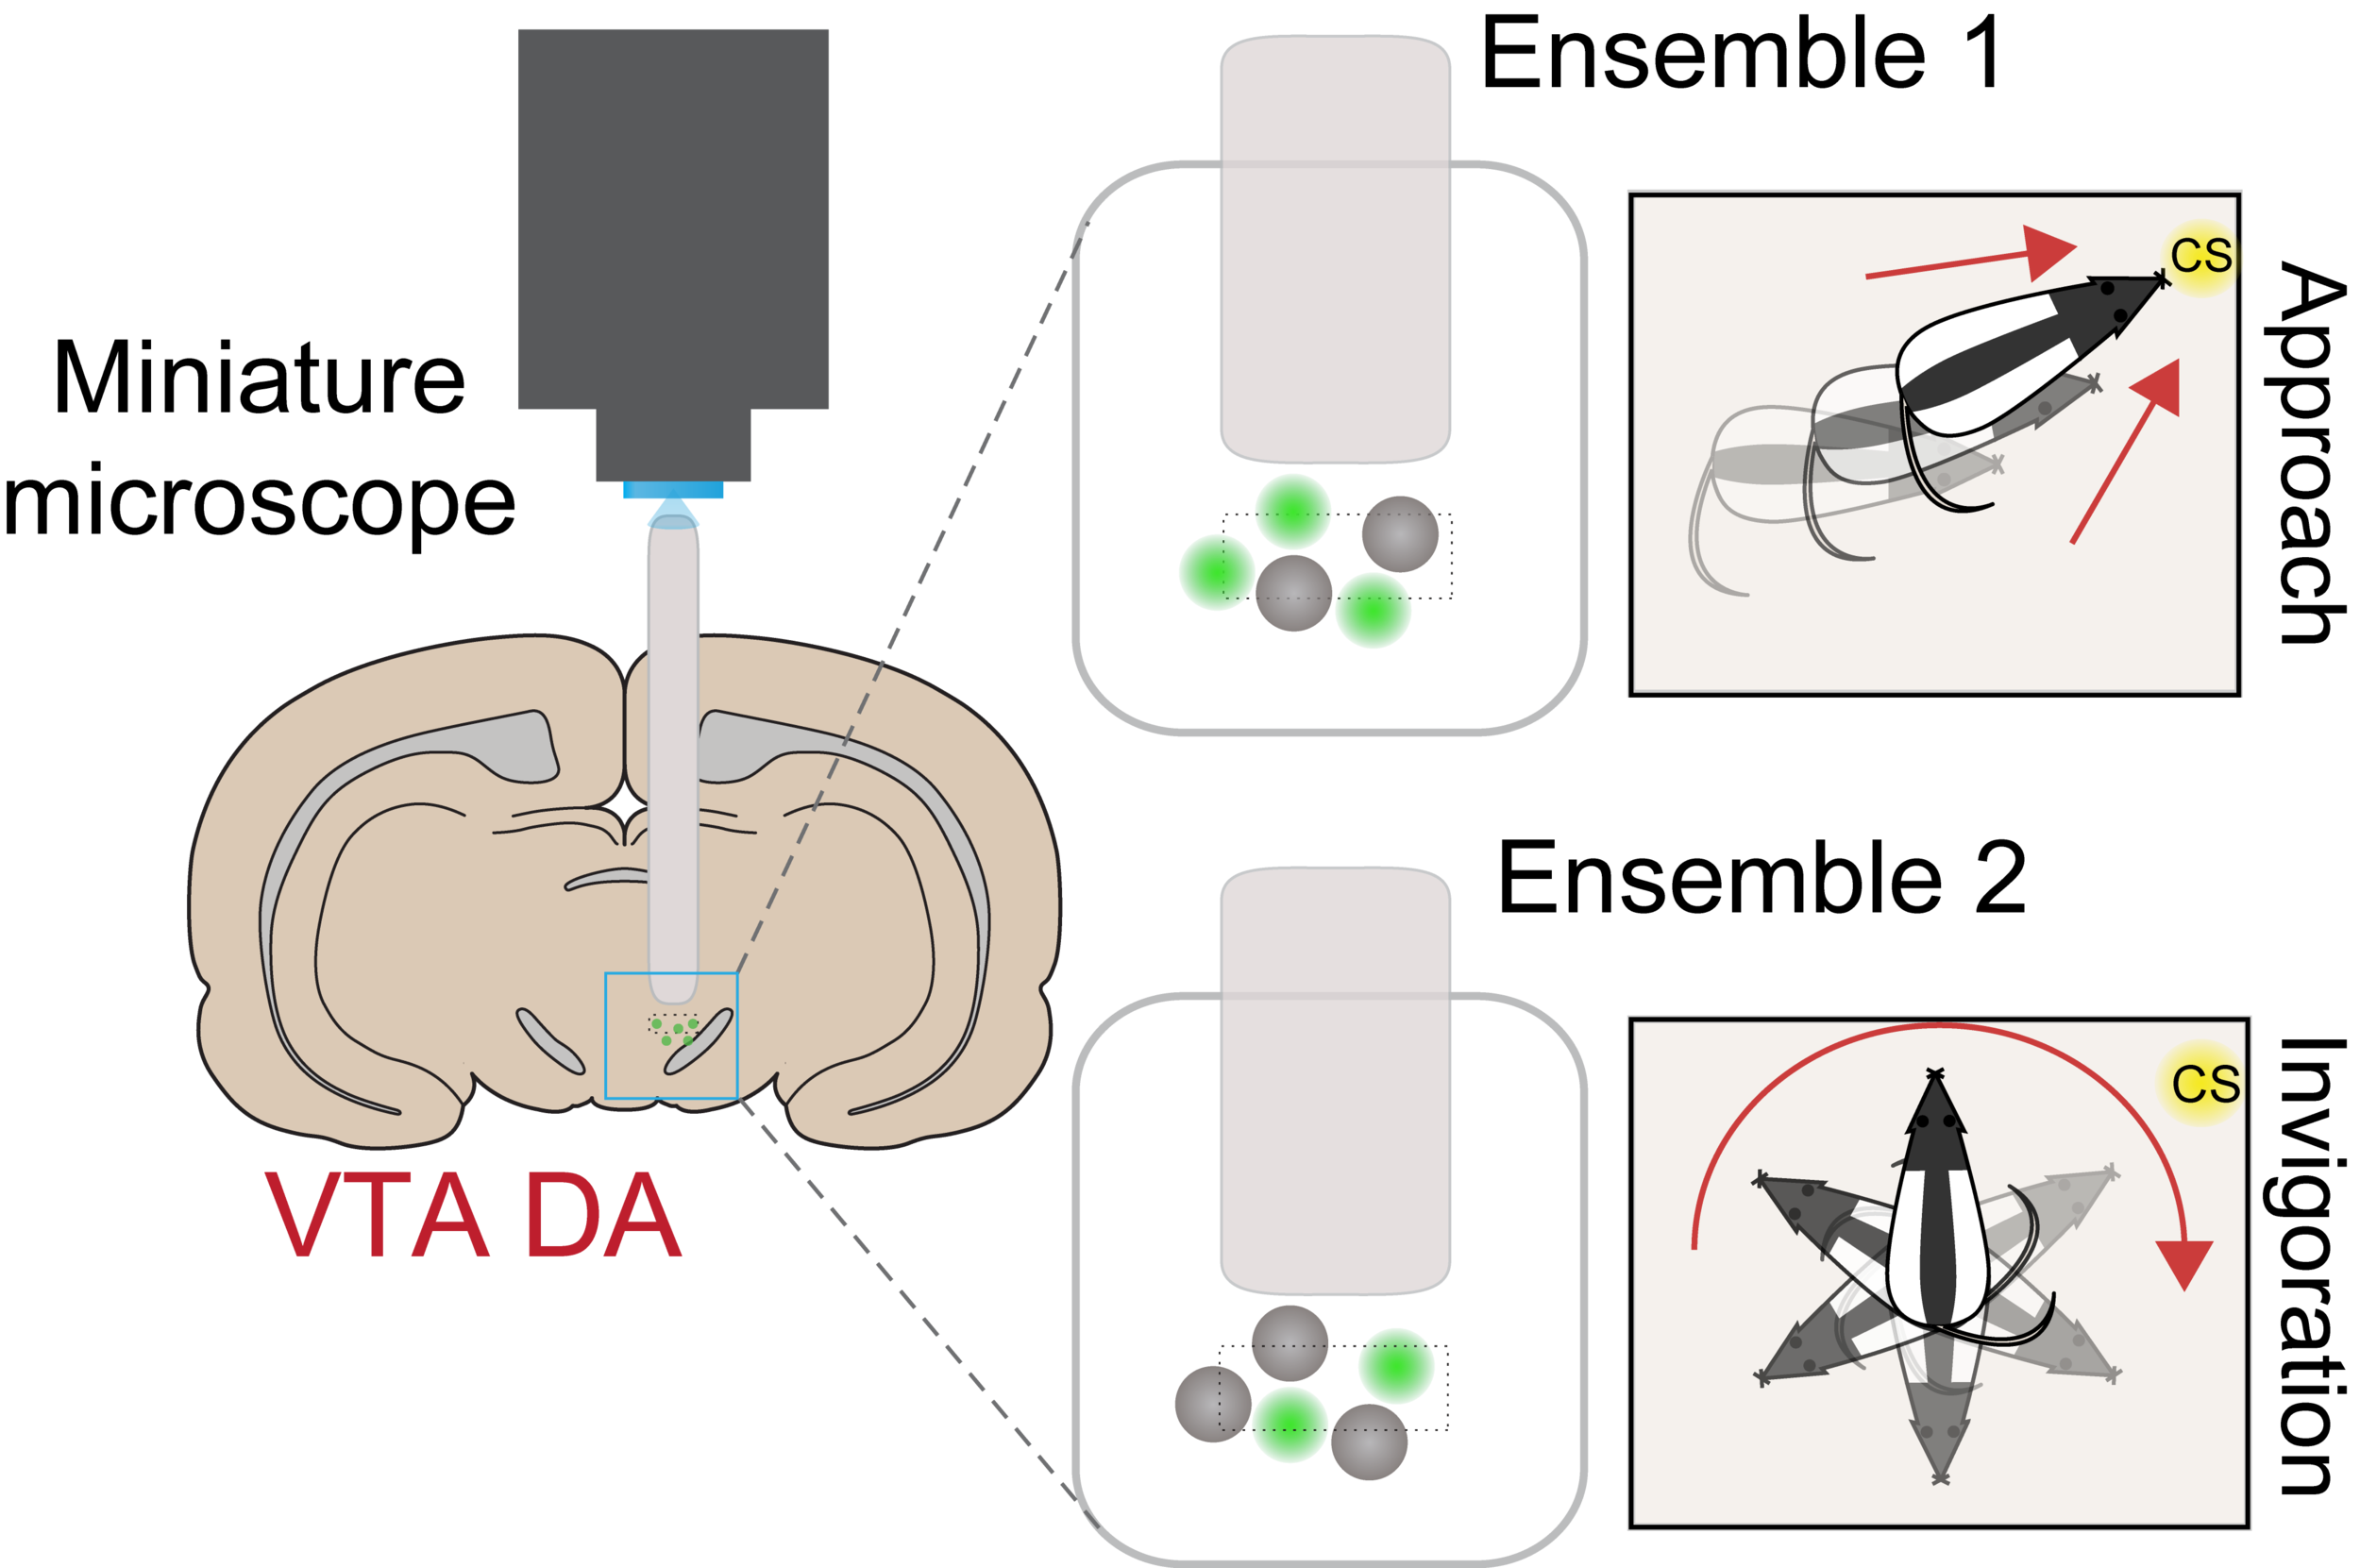 Heterogeneous DA neuron activity will be further explored with projection-defined imaging studies.